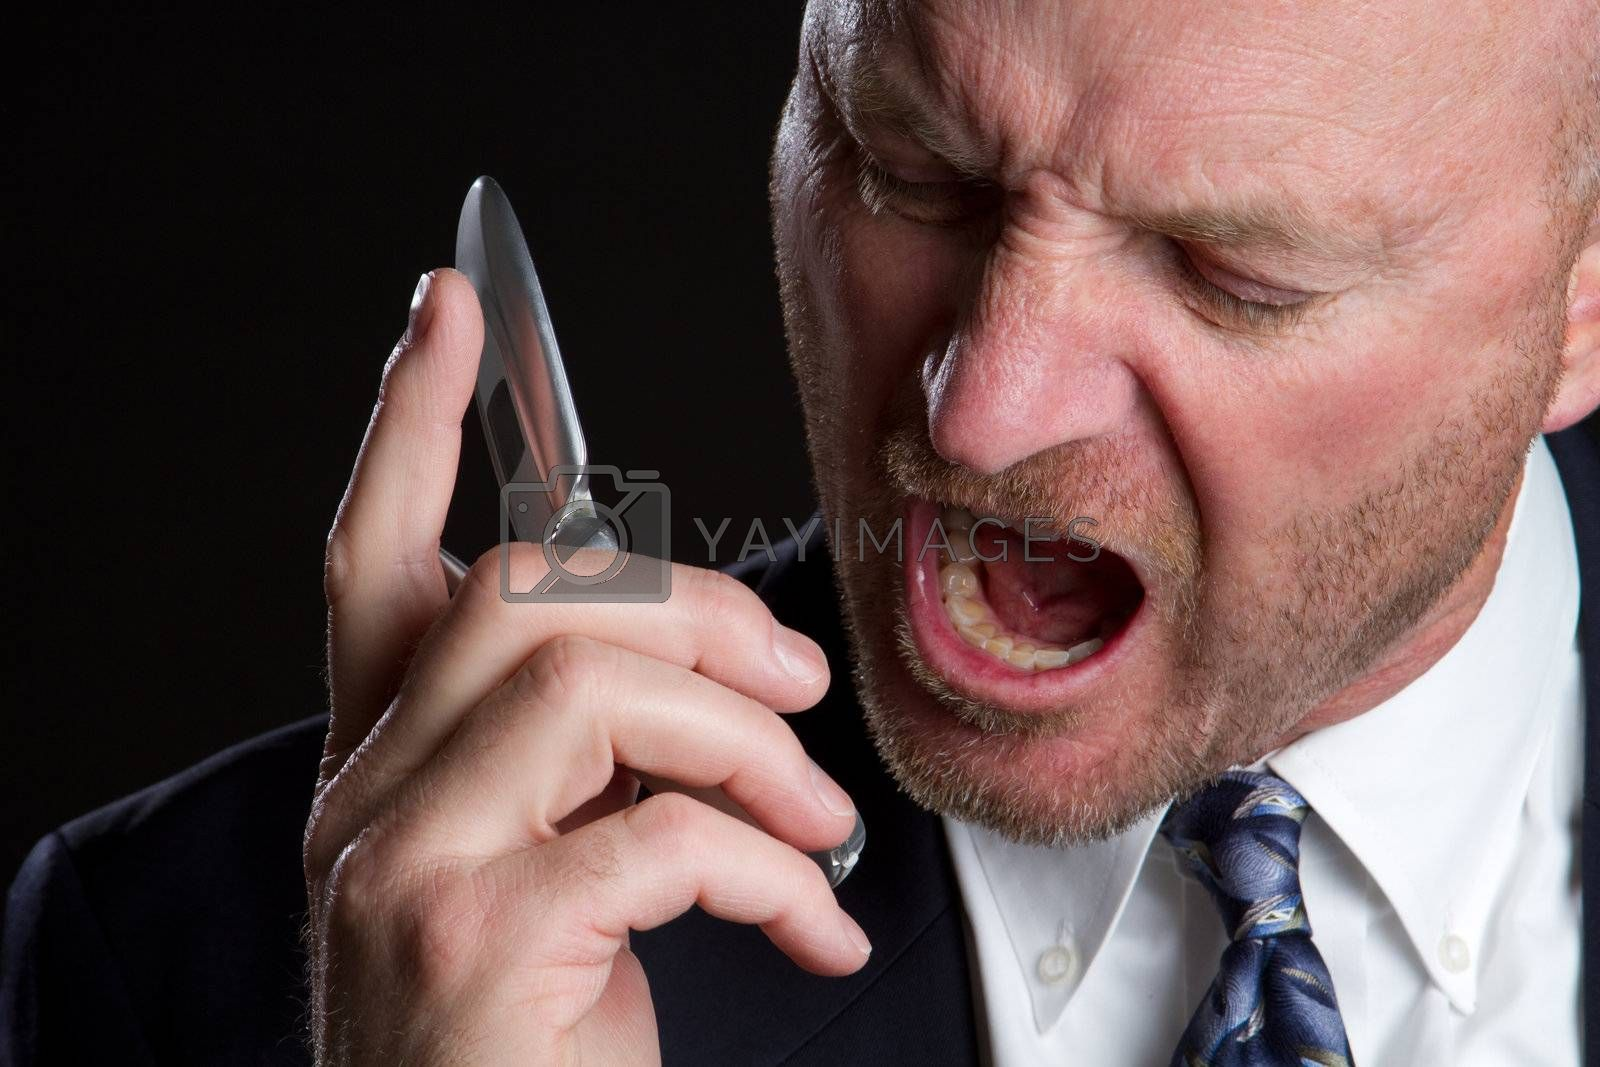 Angry man screaming on phone